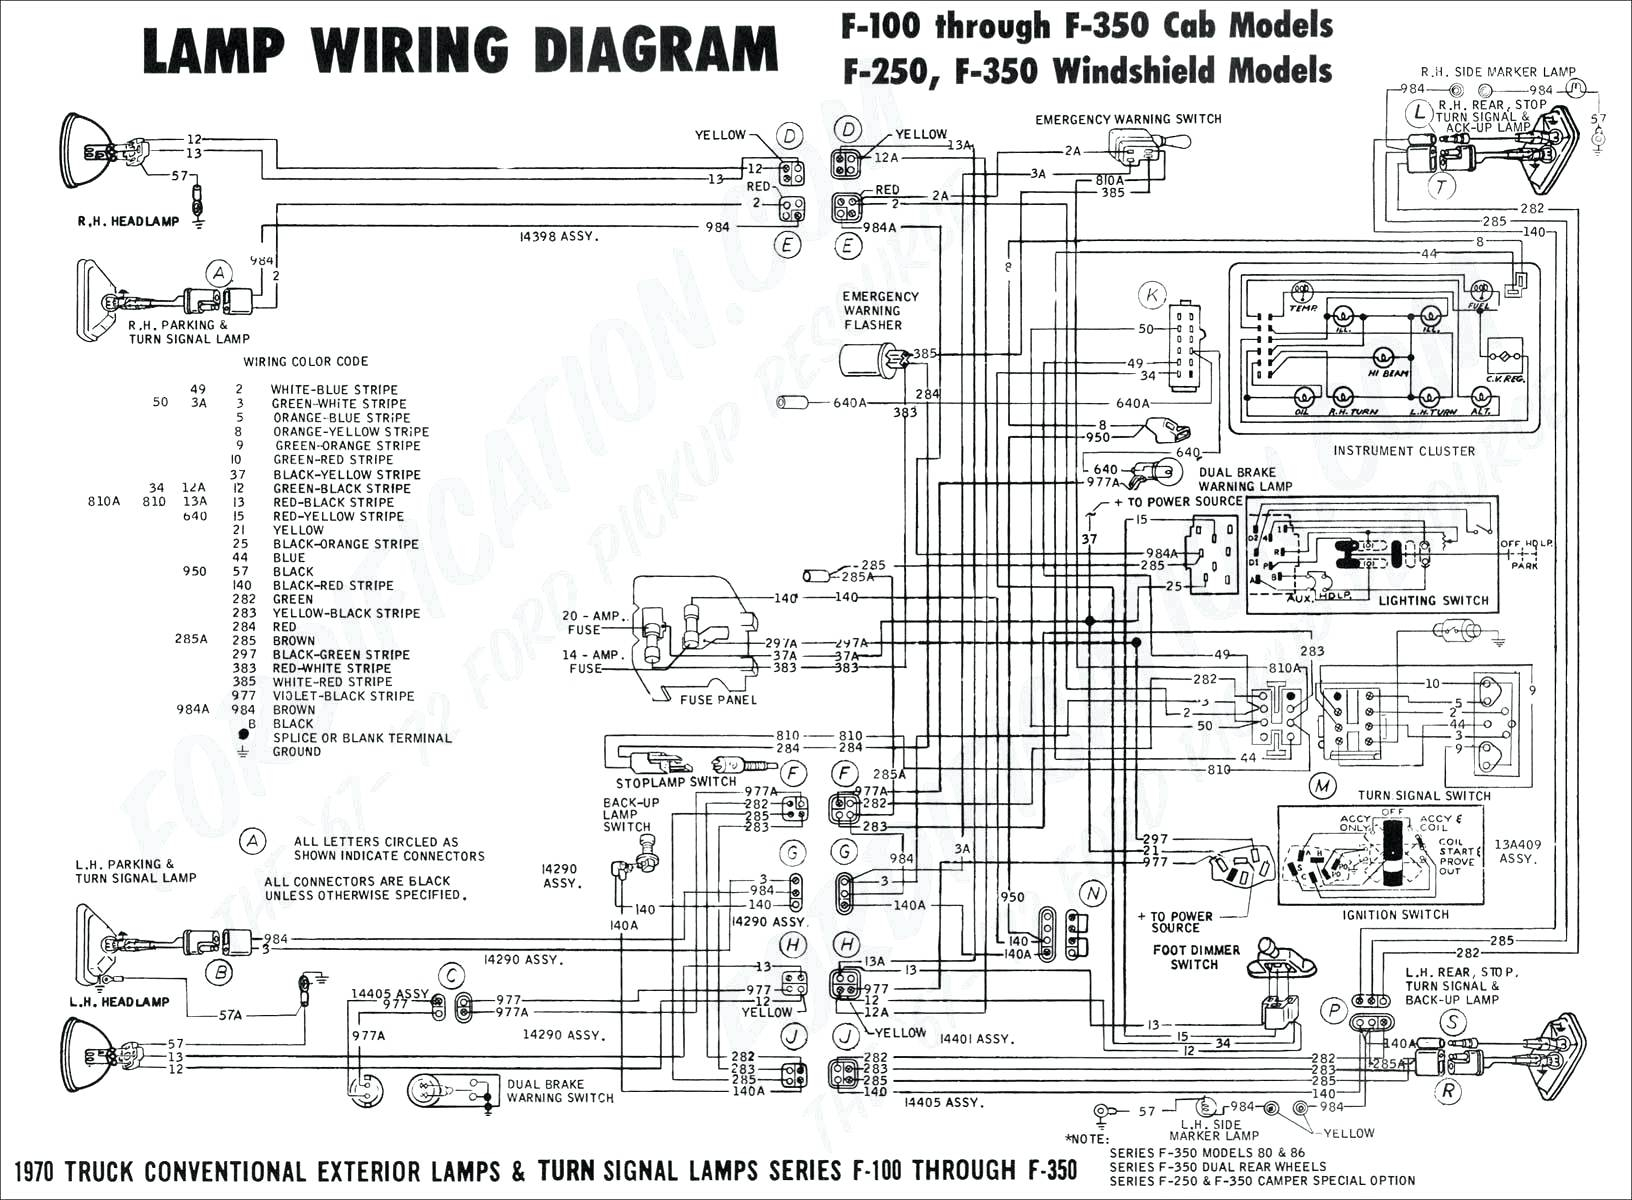 [DHAV_9290]  DIAGRAM] 98 Dodge Ram 2500 Wiring Diagram FULL Version HD Quality Wiring  Diagram - ORBITALDIAGRAMS.SAINTMIHIEL-TOURISME.FR | 2005 International 4300 Wiring Diagram |  | Saintmihiel-tourisme.fr